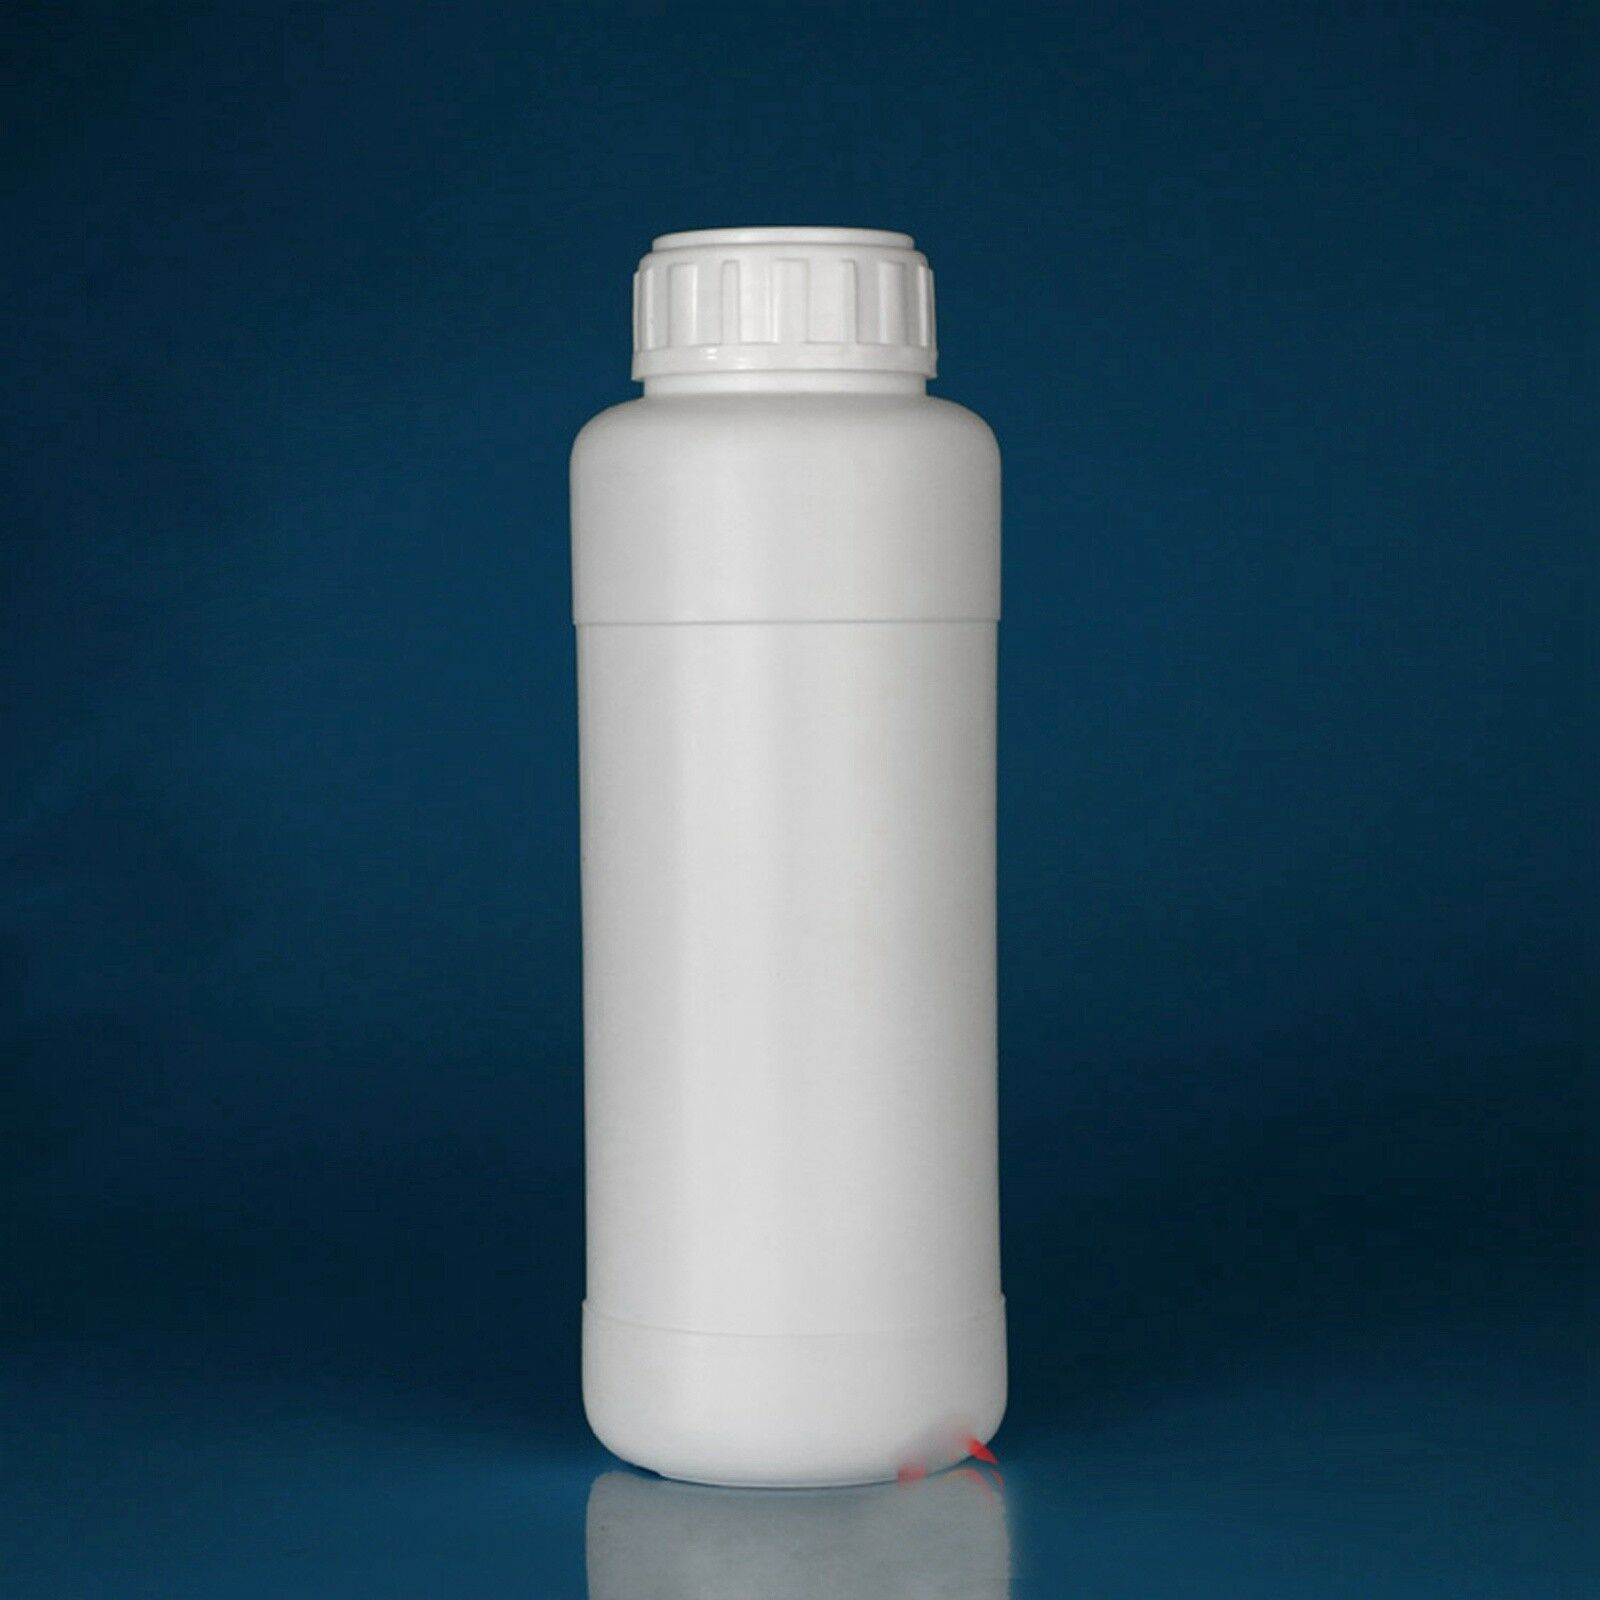 Details about 50/100/250/500/1000ml Fluorinated HDPE Bottle Chemical  Resistance Lab Supplies